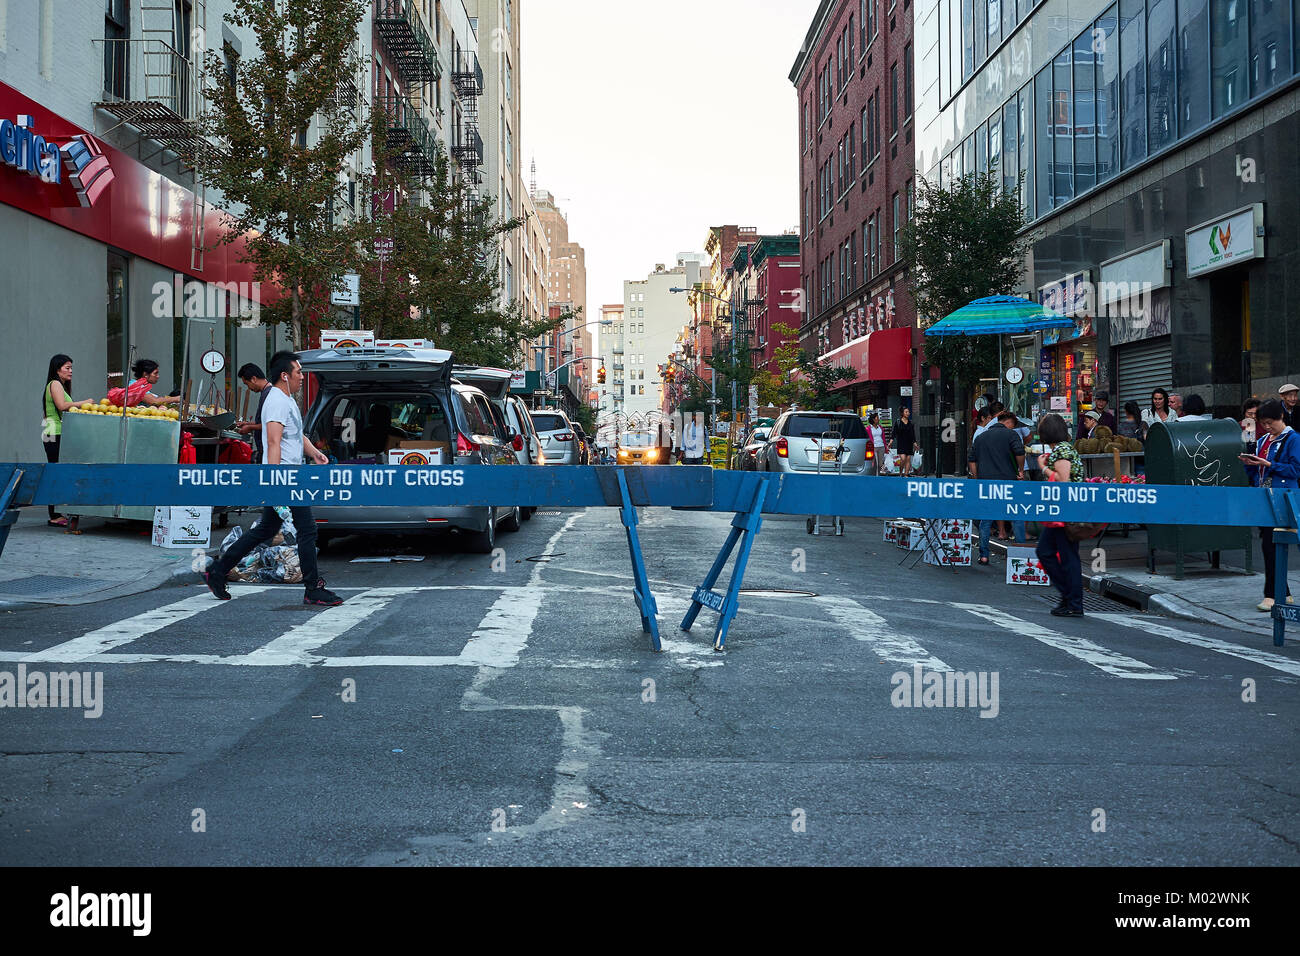 NEW YORK CITY - SEPTEMBER 24, 2016: Police line at the Hester street and Bowery Street cross, with people crossing - Stock Image